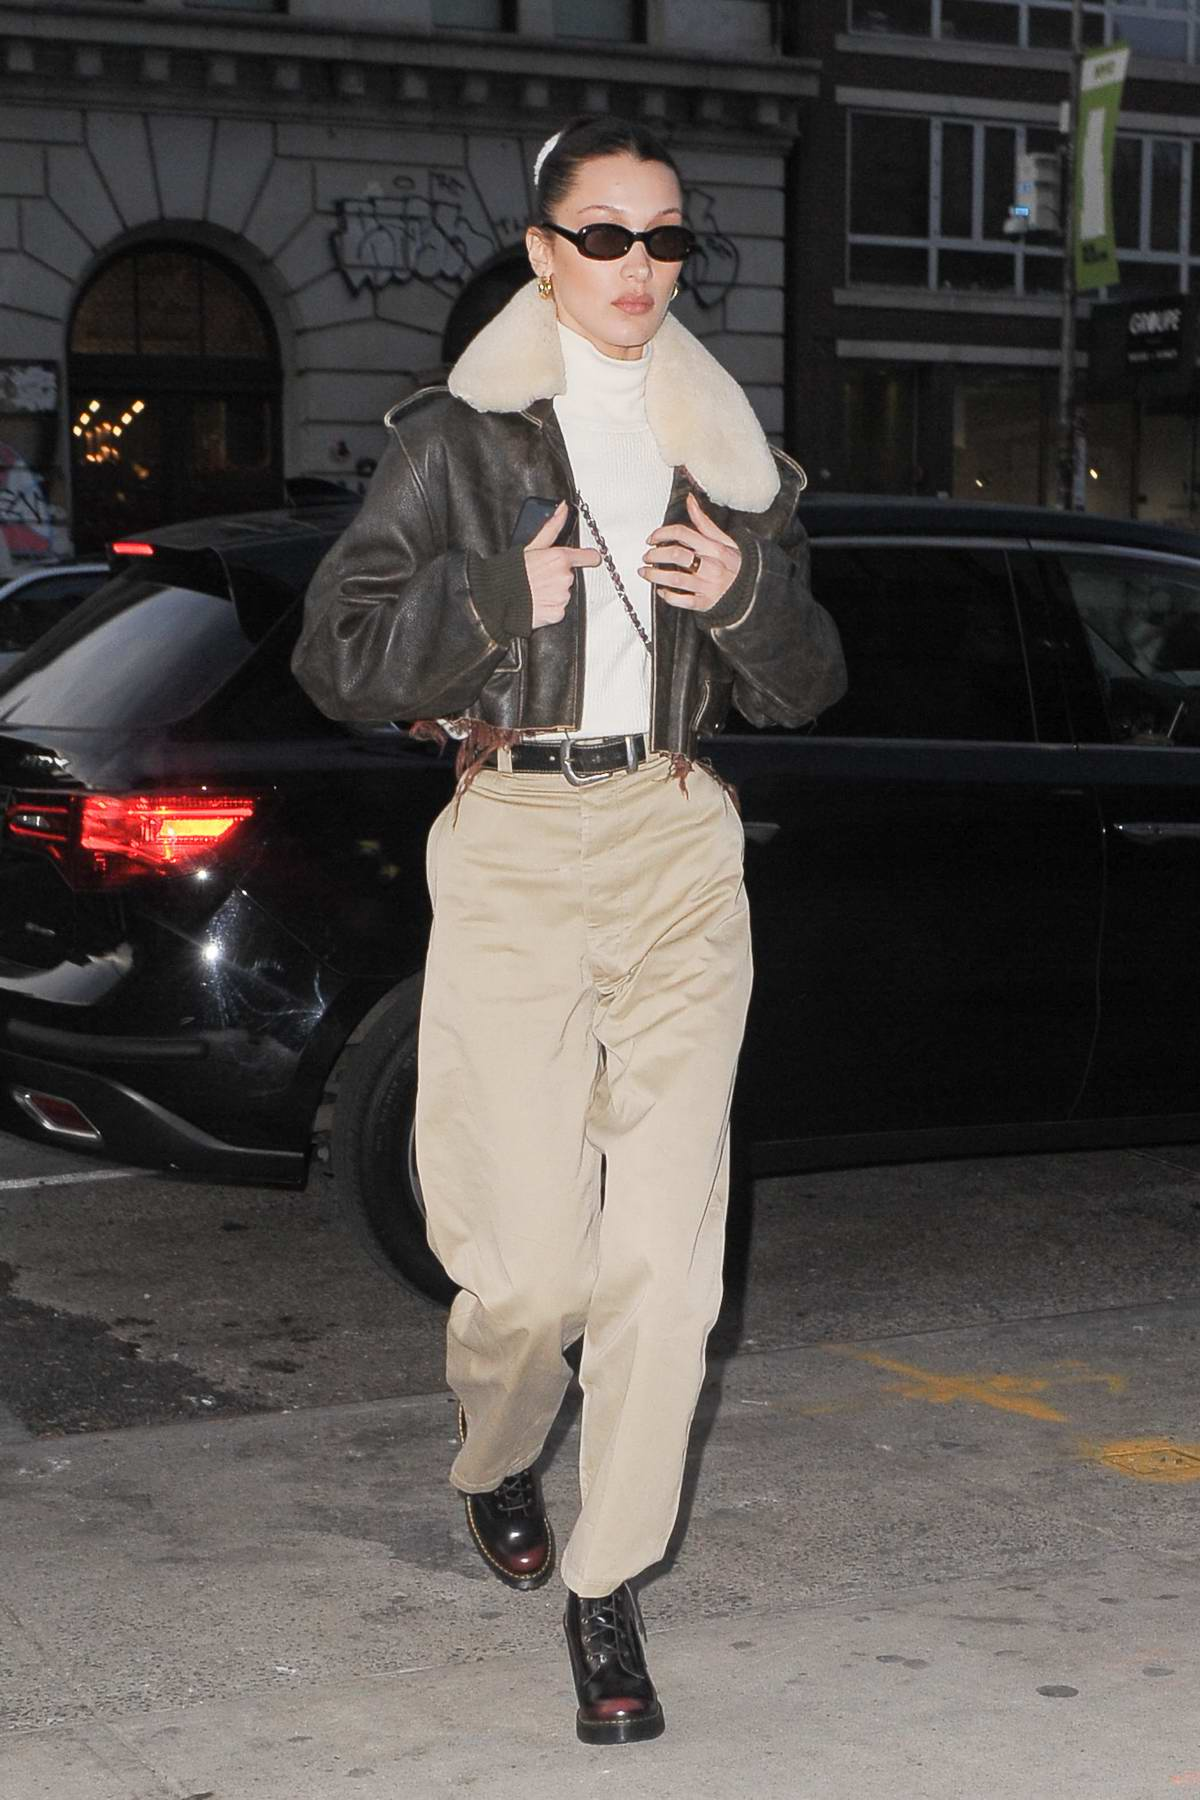 Bella Hadid Archives Celebsfirst Inside Flats Khaky Wore A Fur Lined Leather Jacket With Beige Pants As She Arrives At